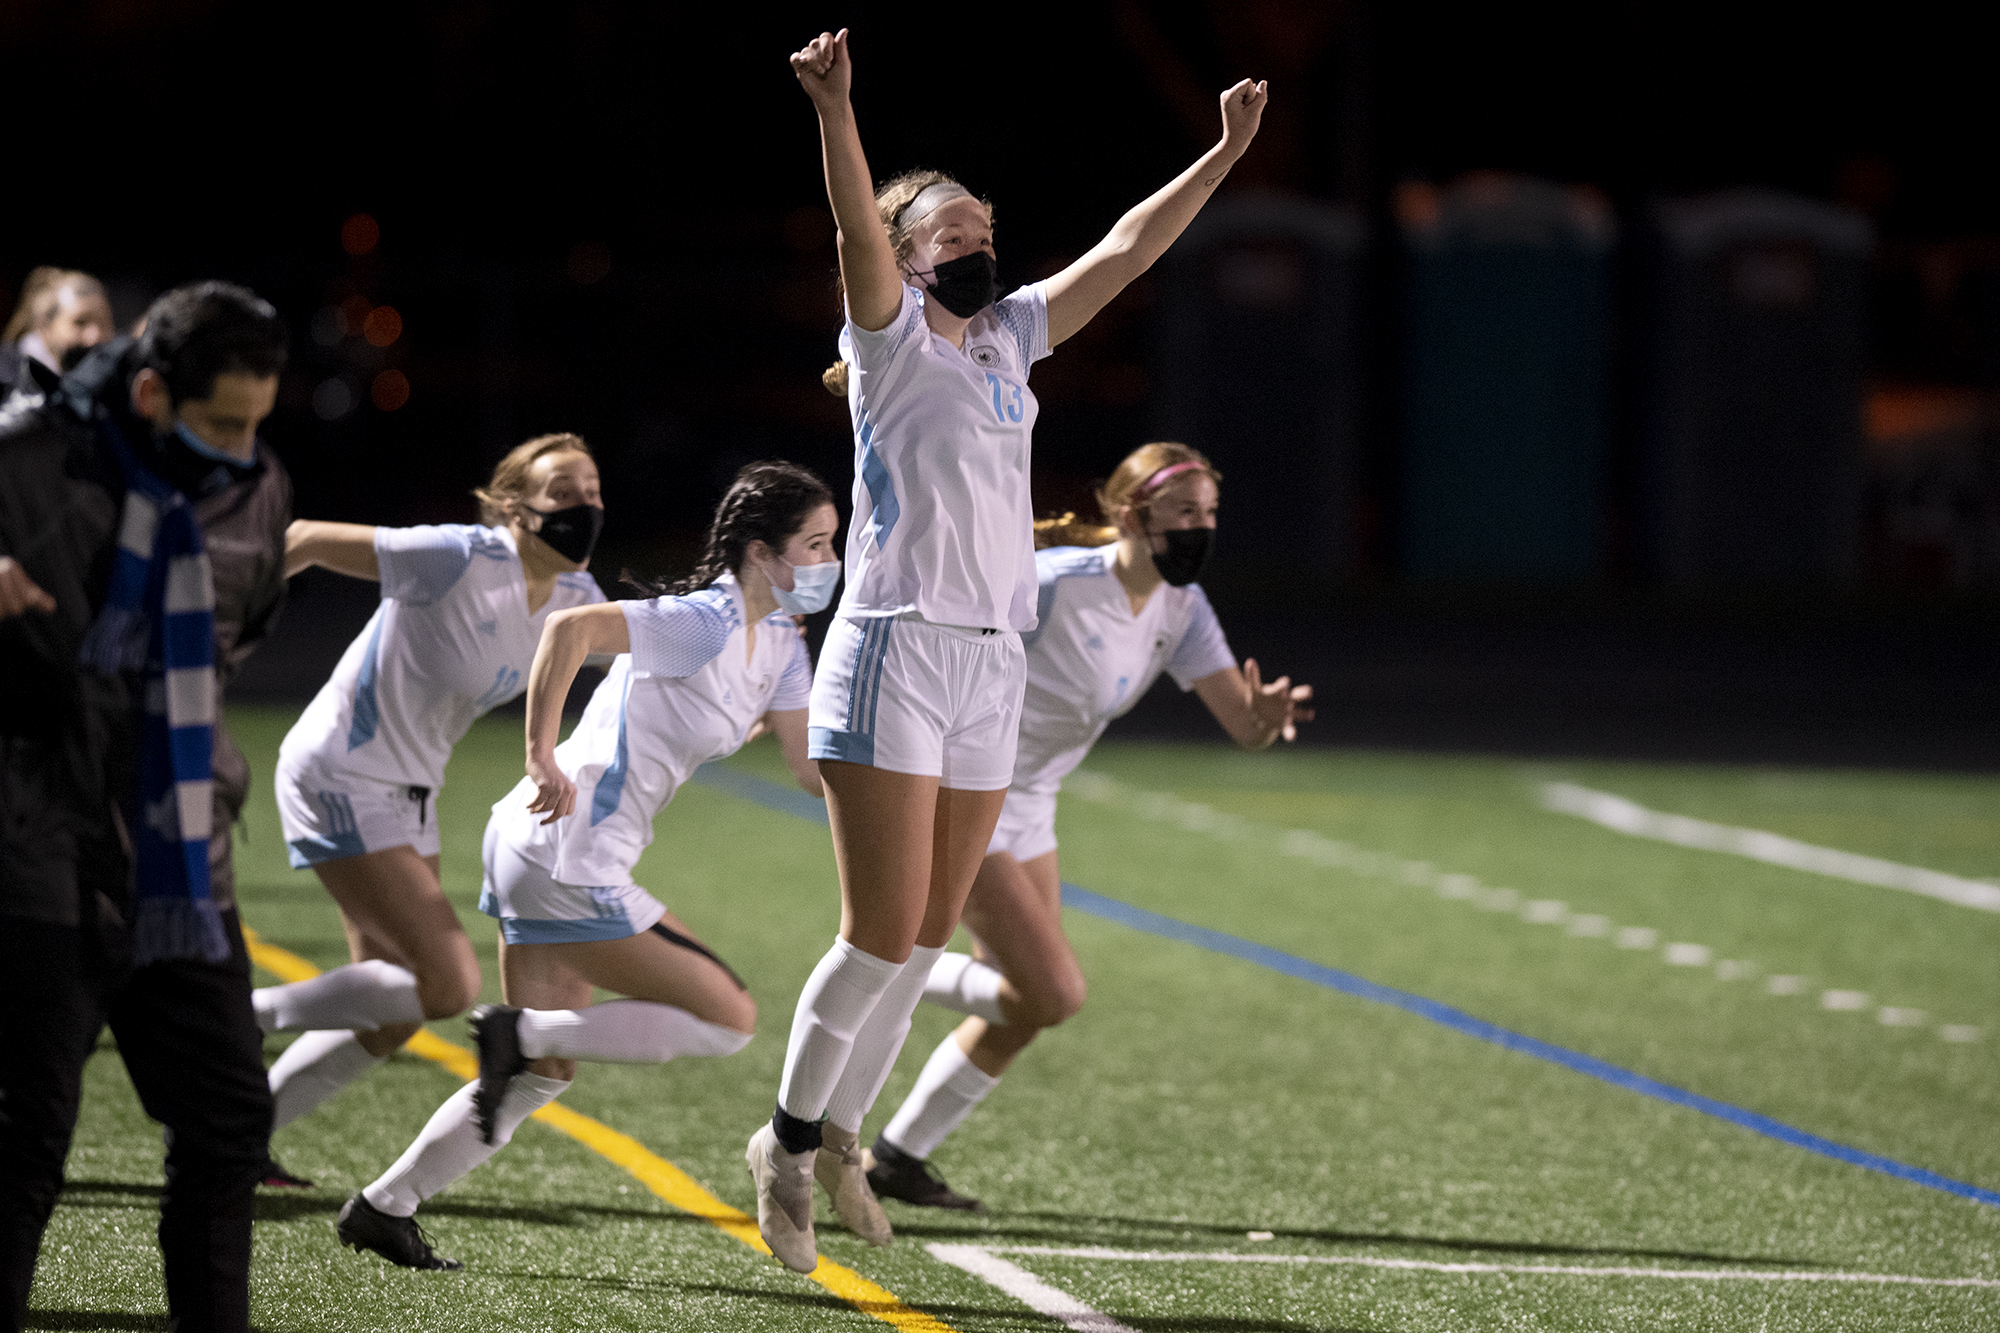 Hockinson's Grace Abbott raises her arms in celebration as teammates run on the field in victory on Saturday, February 27, 2021, at Columbia River High School. The Hawks earned a 1-0 victory over Columbia River in a rematch of the 2019 2A State girls soccer championship.